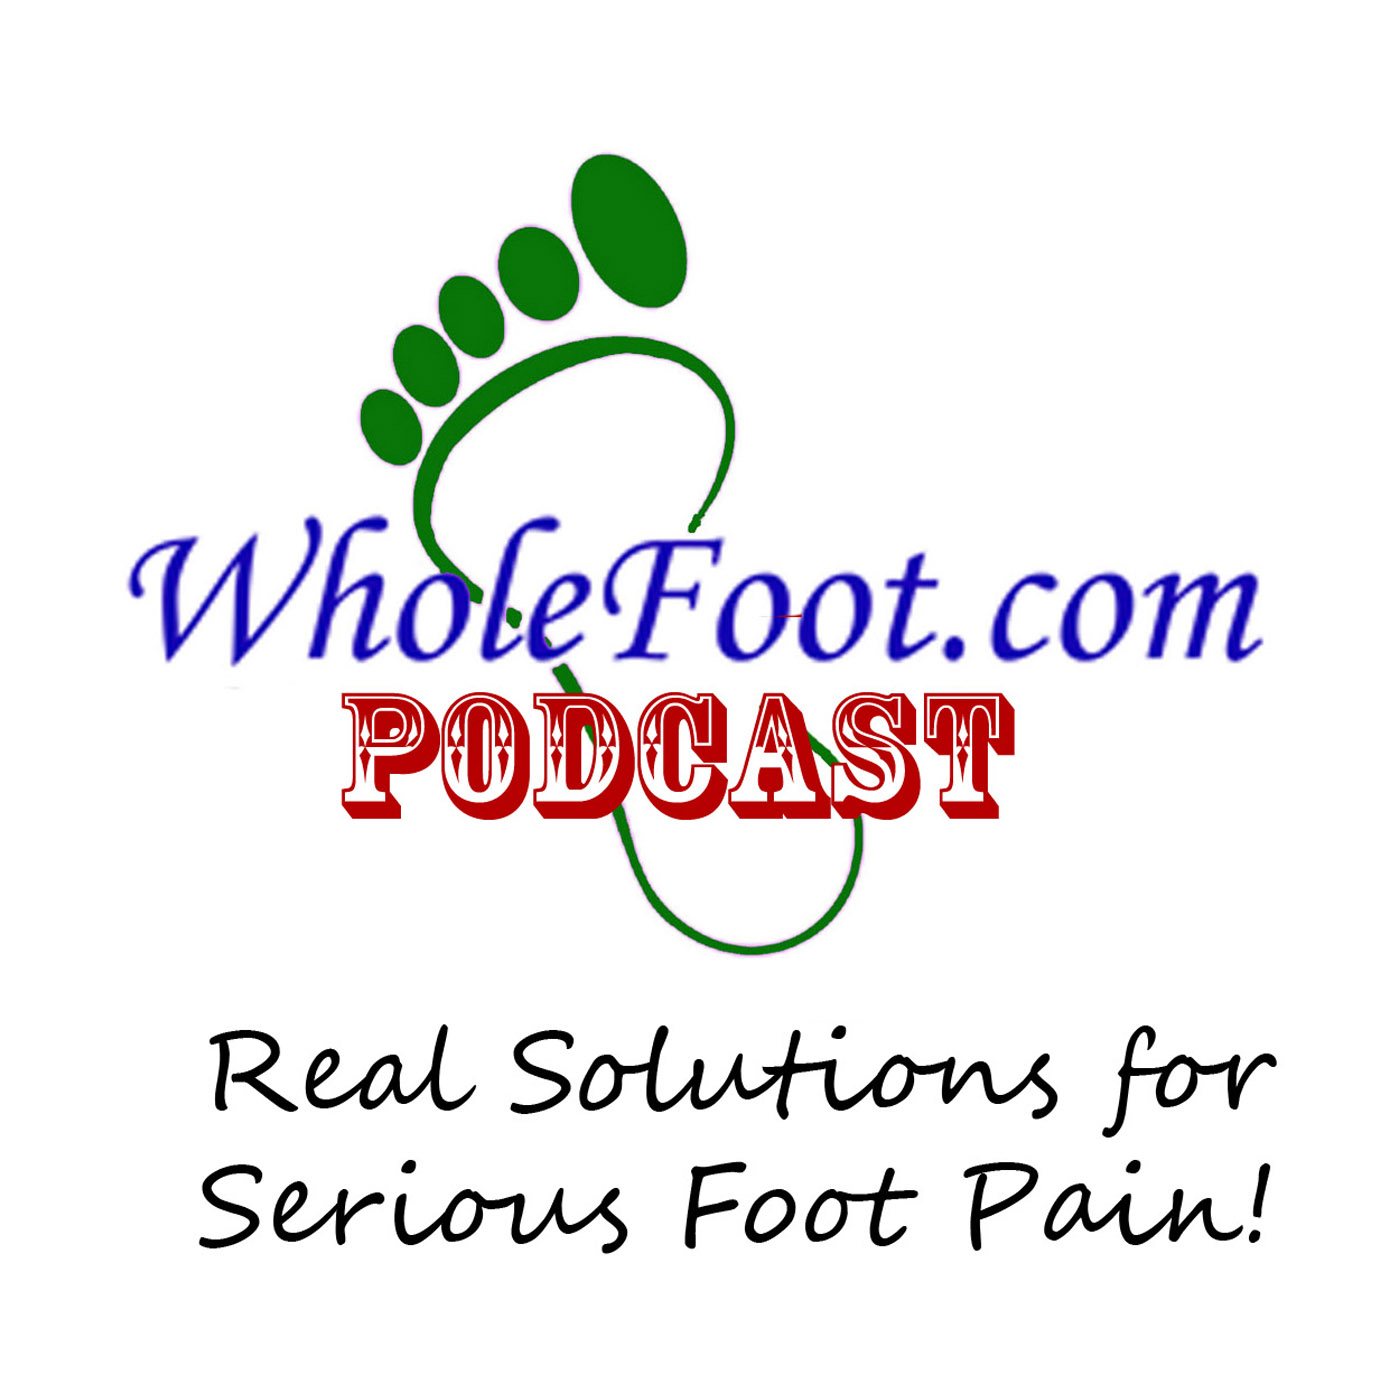 Whole foot » Podcast